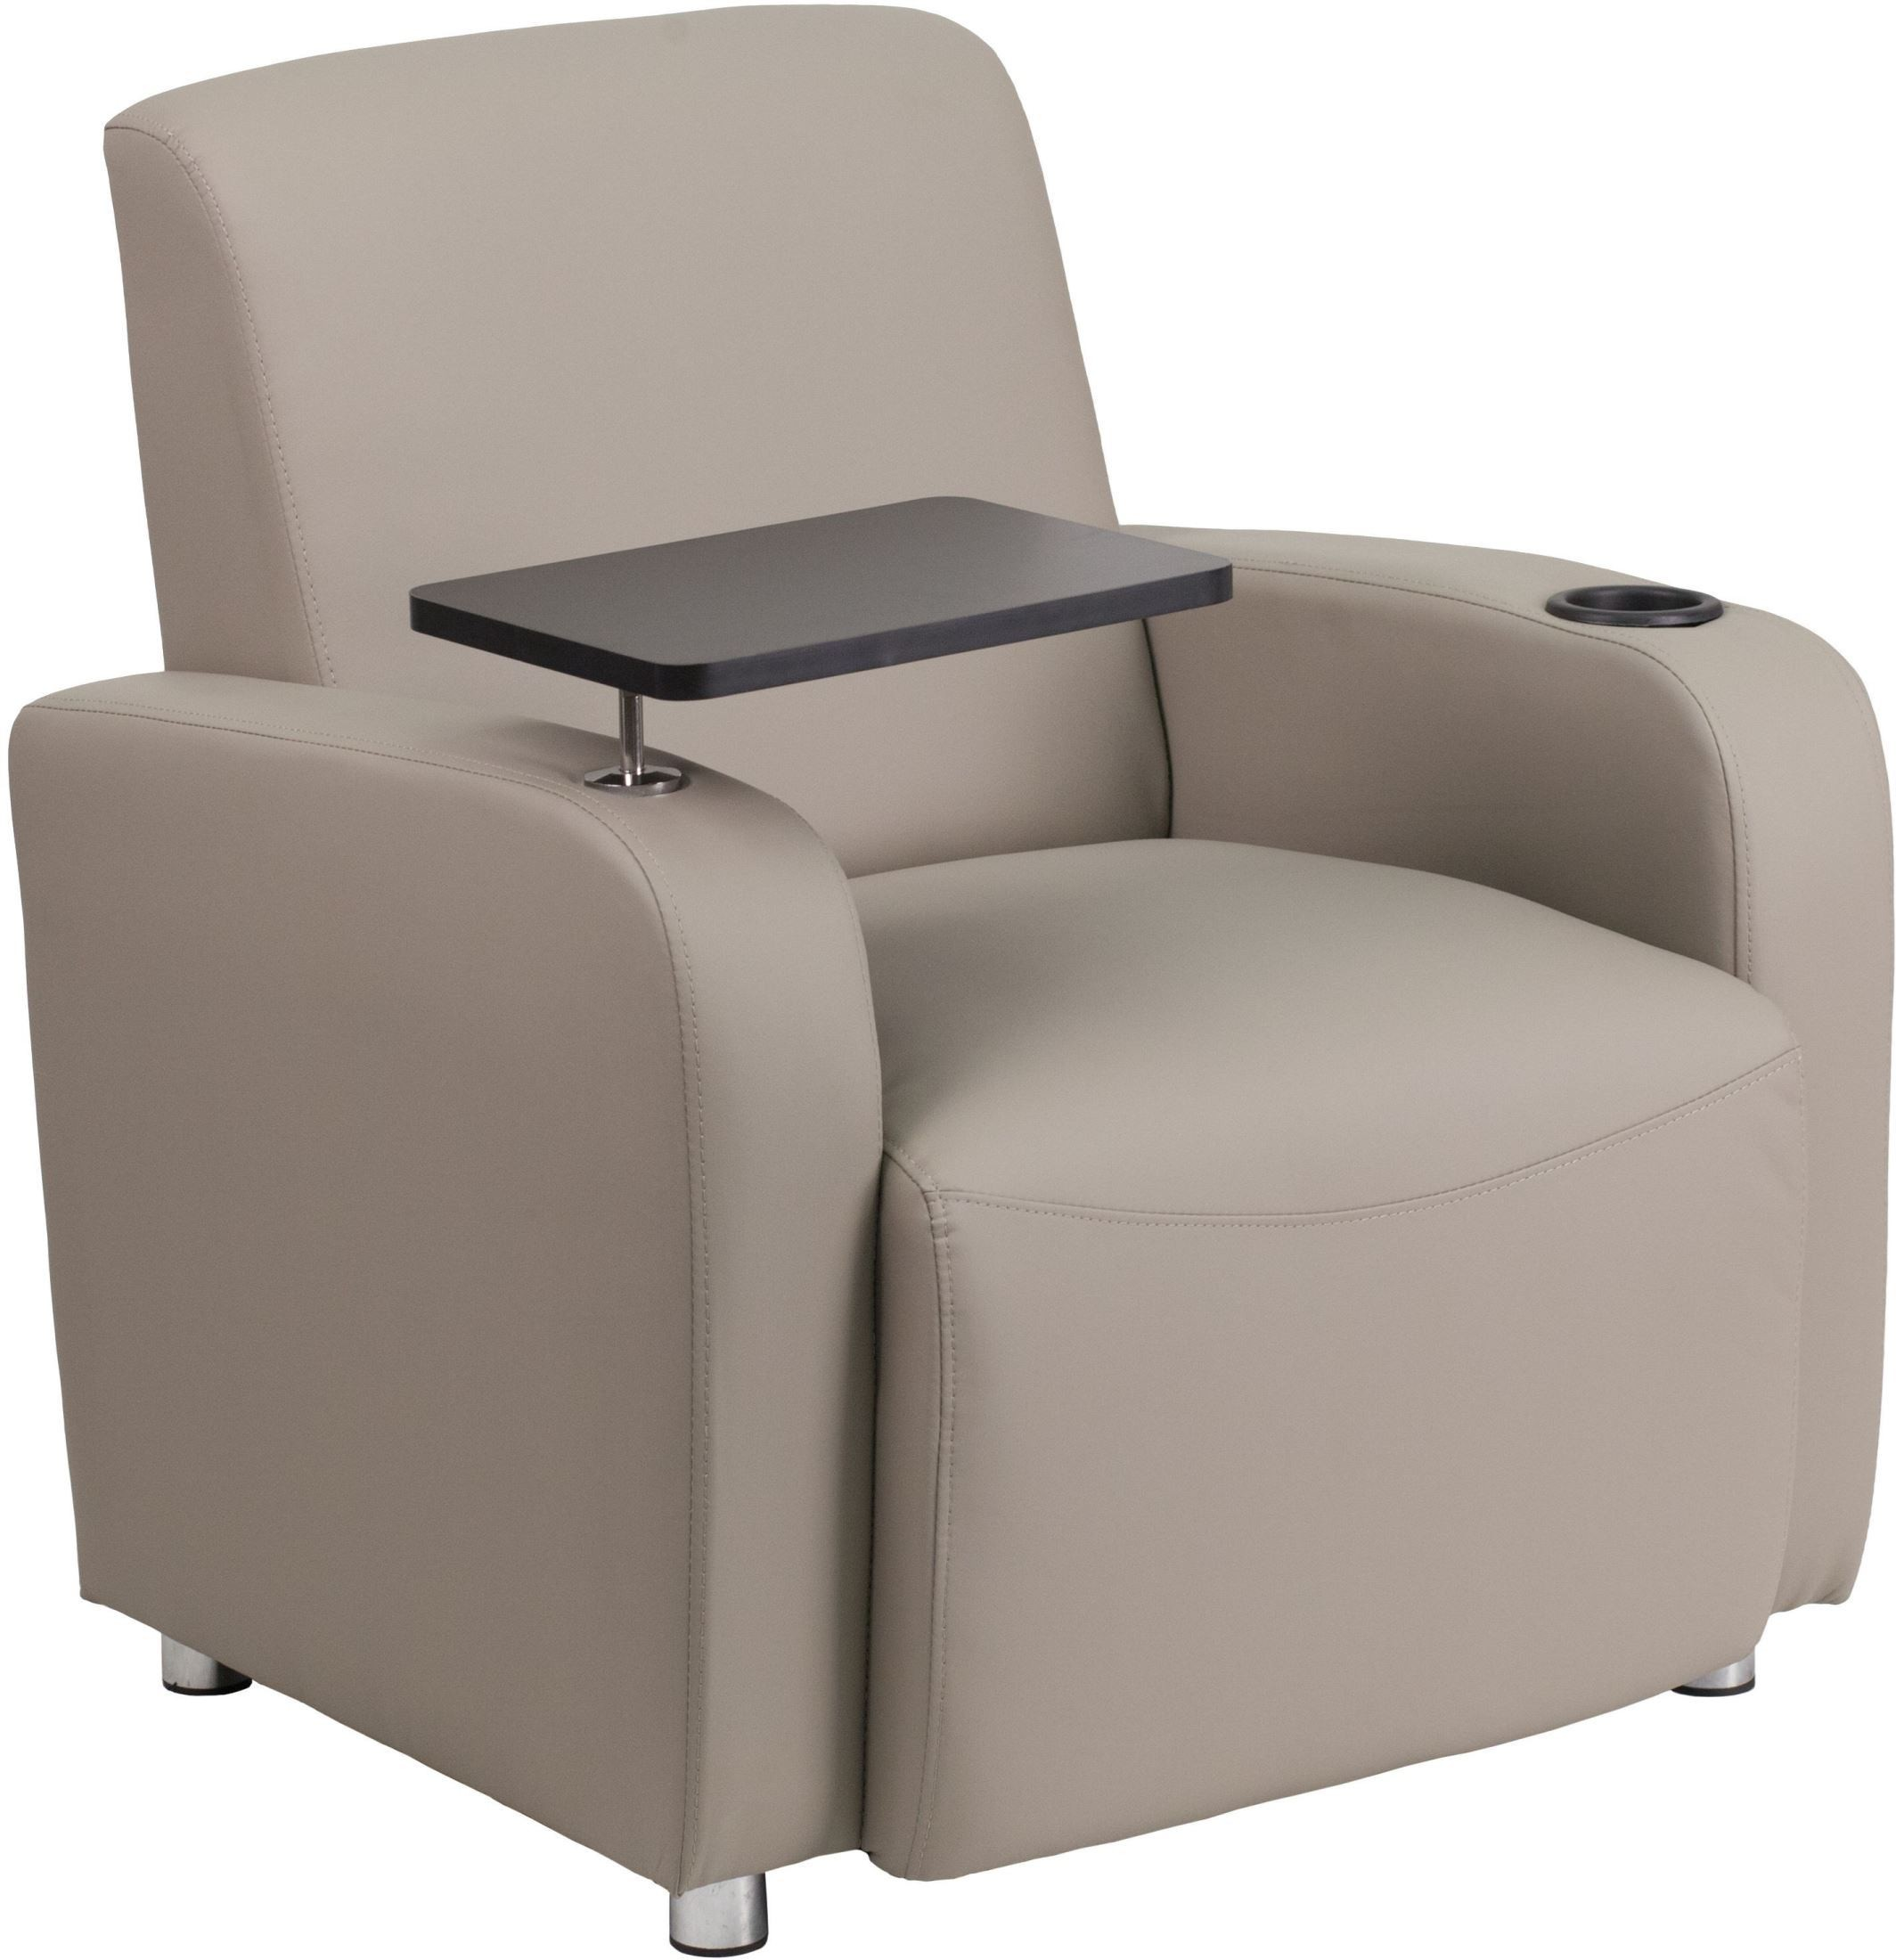 Gray Leather Guest Arm Chair with Cup Holder from Renegade